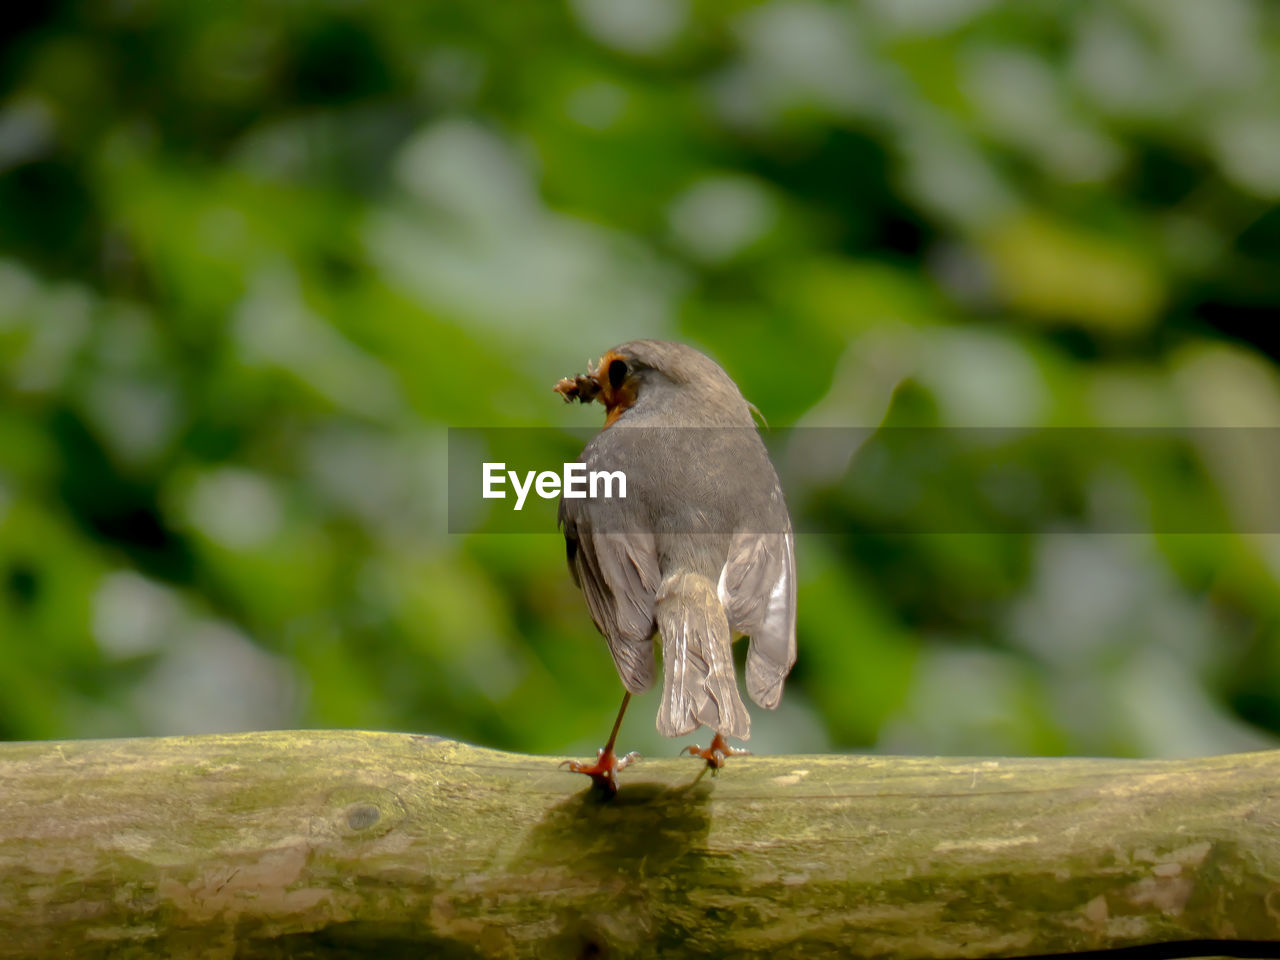 animal themes, one animal, animal, bird, animals in the wild, vertebrate, animal wildlife, focus on foreground, perching, day, no people, wood - material, close-up, nature, full length, selective focus, outdoors, sparrow, solid, tree, mouth open